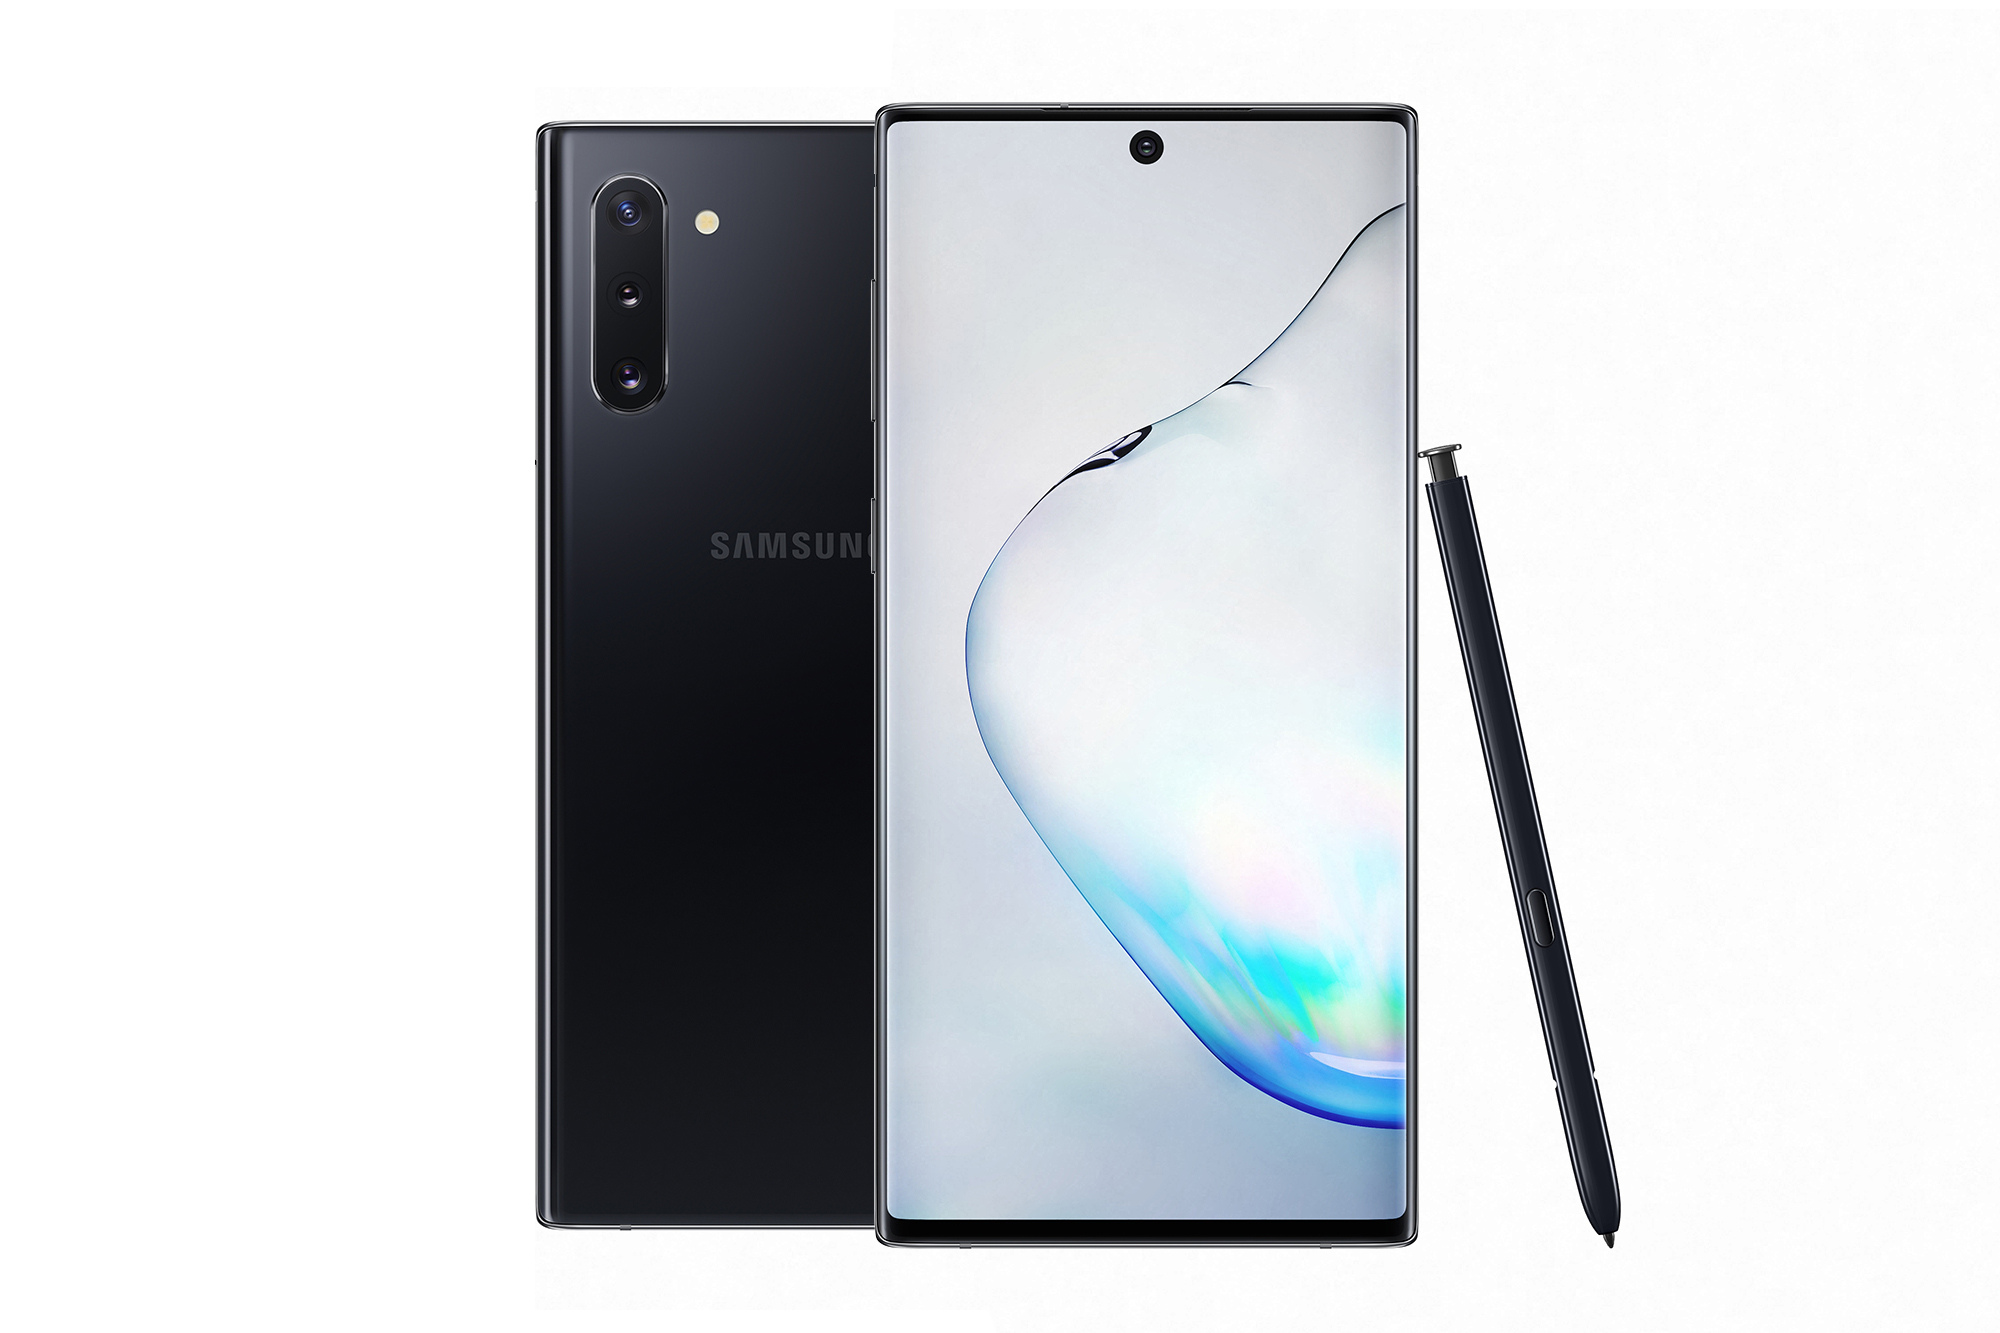 Galaxy Note10 una experiencia a nivel superior | EL FRENTE